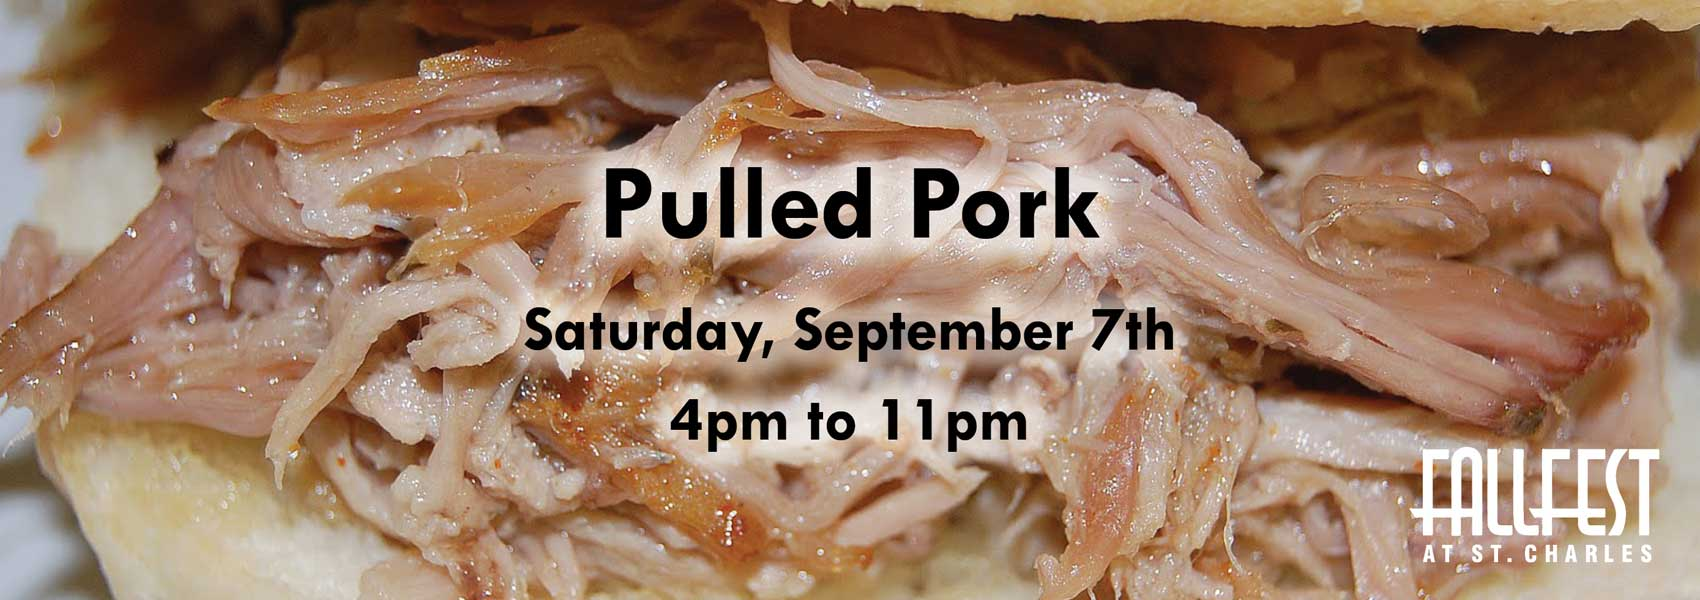 Pulled Pork - Saturday Sept 7th - 4 to 11pm